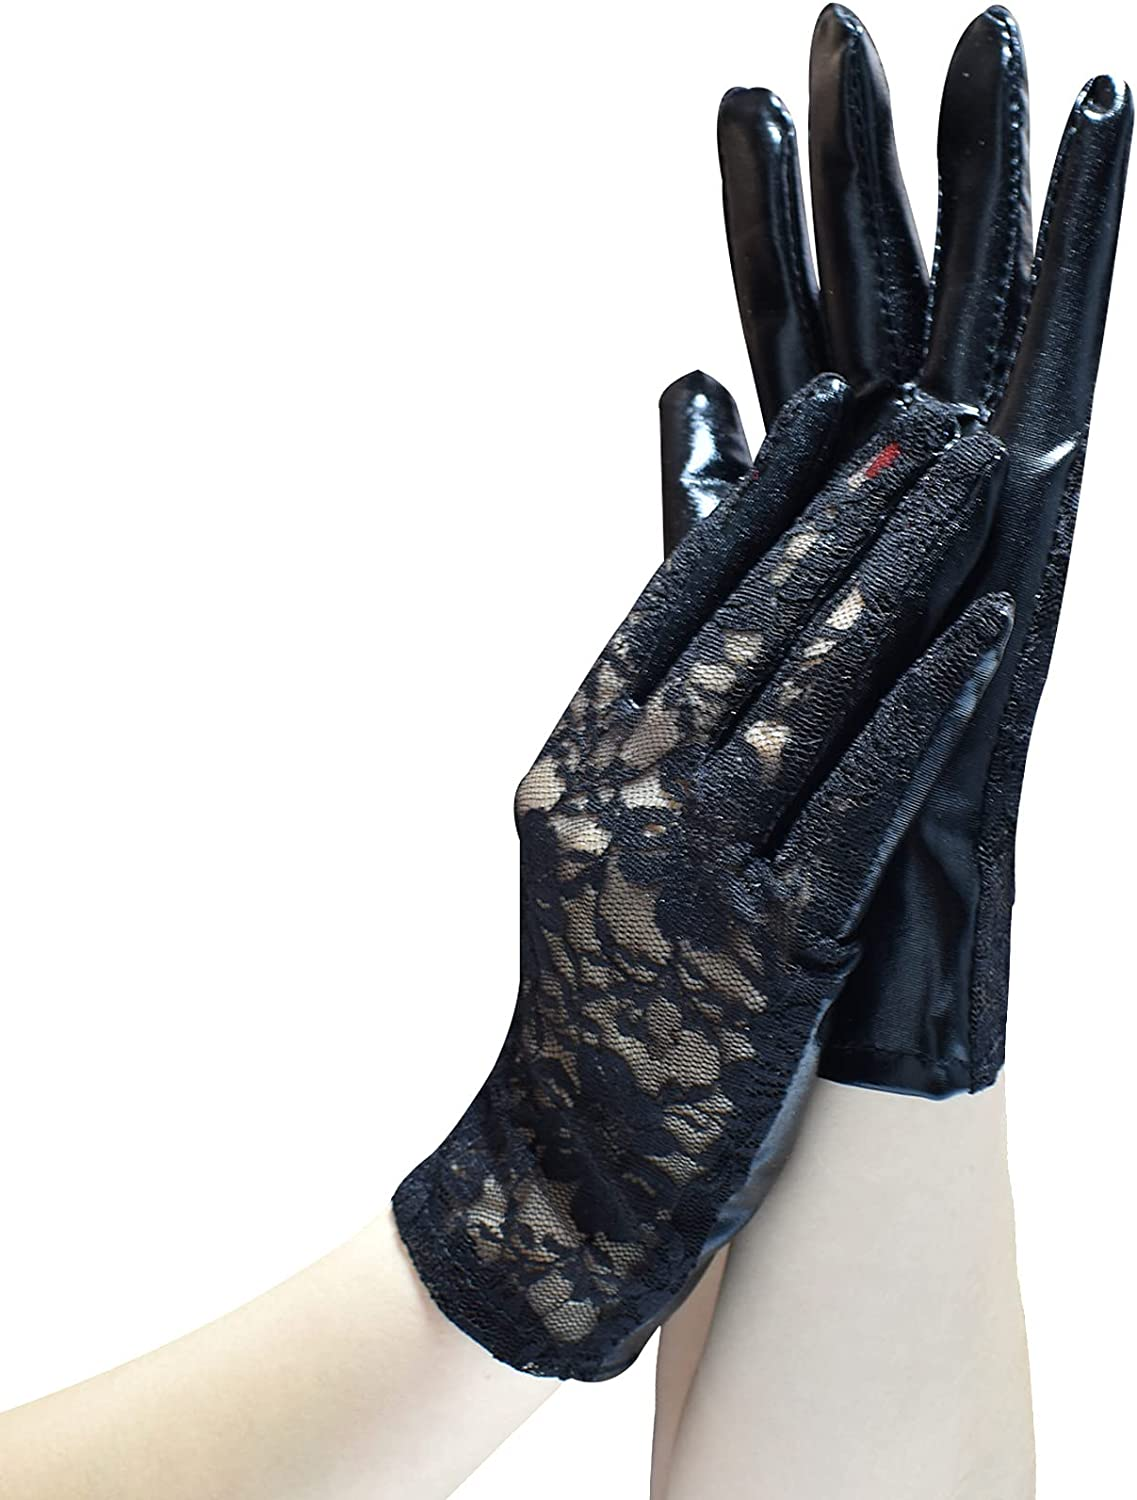 ATHX Women Fishnet Wrist Length Gloves with PU Leather Palm